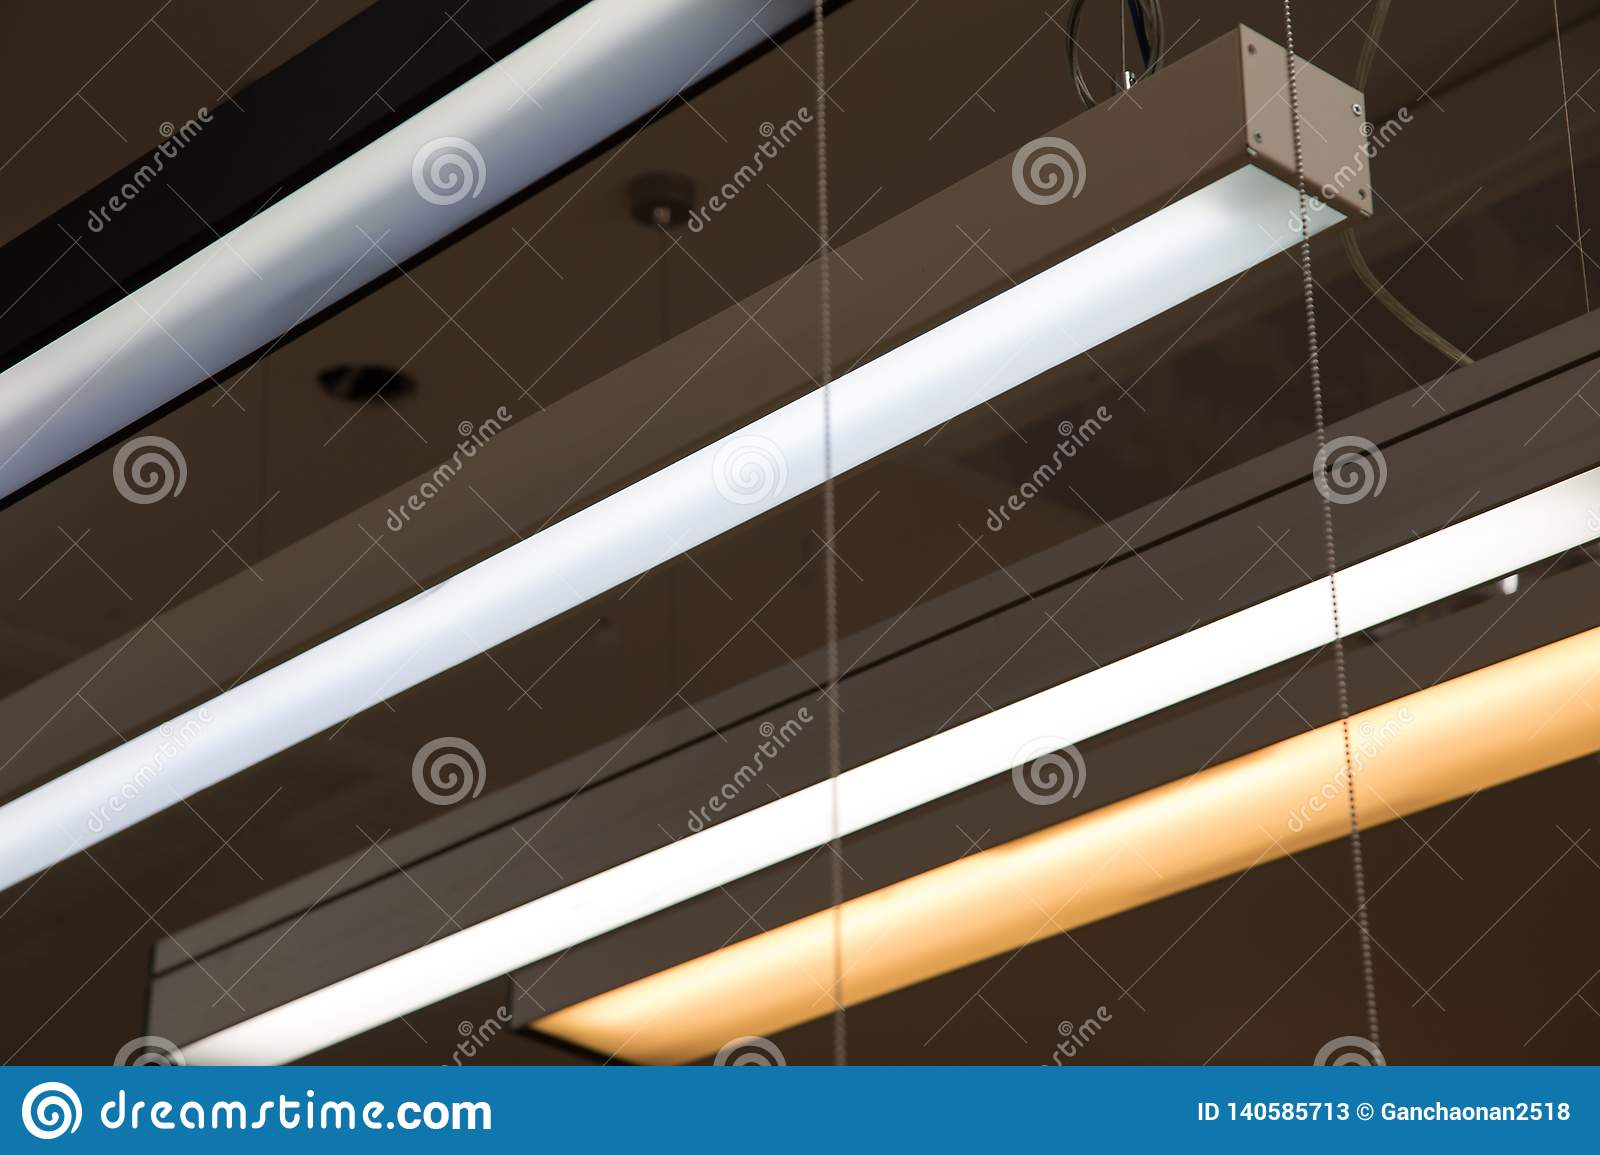 Led Light Bulb In The Industrial Lamp Is Bright On The Ceiling Of The New Warehouse With Copy Space Stock Illustration Illustration Of Diamond Decorative 140585713